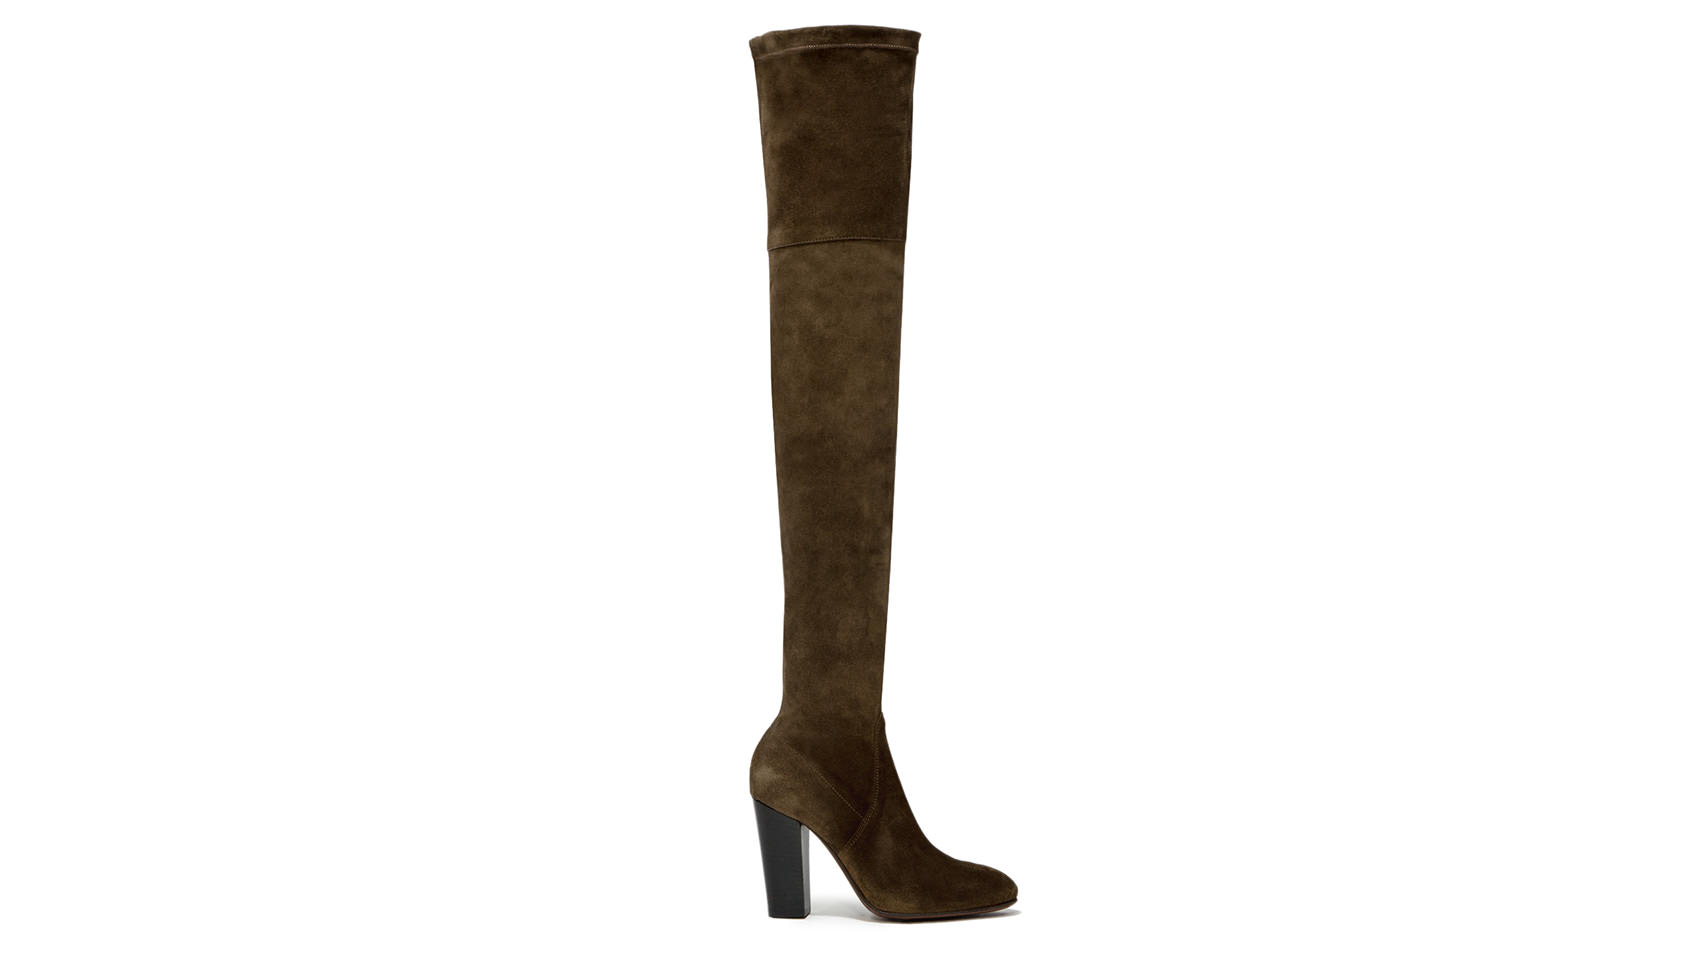 BUTTERO: SOHO CUISSARDES BOOTS IN CAPER GREEN SUEDE